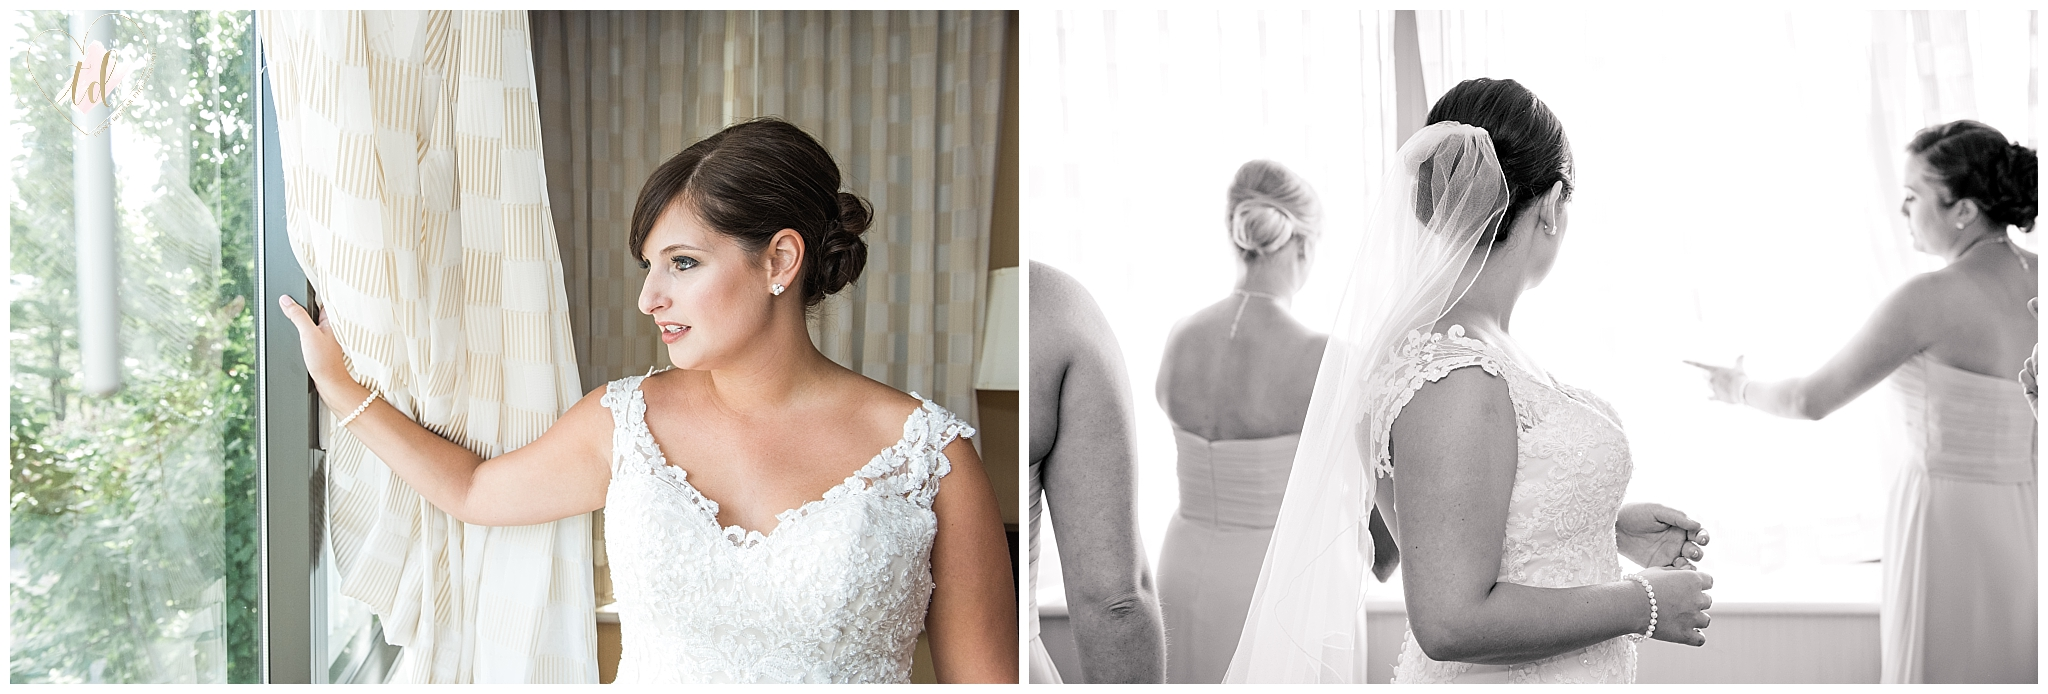 Bridal photography captured by Southern Maine wedding photographer, Trina Dinnar.